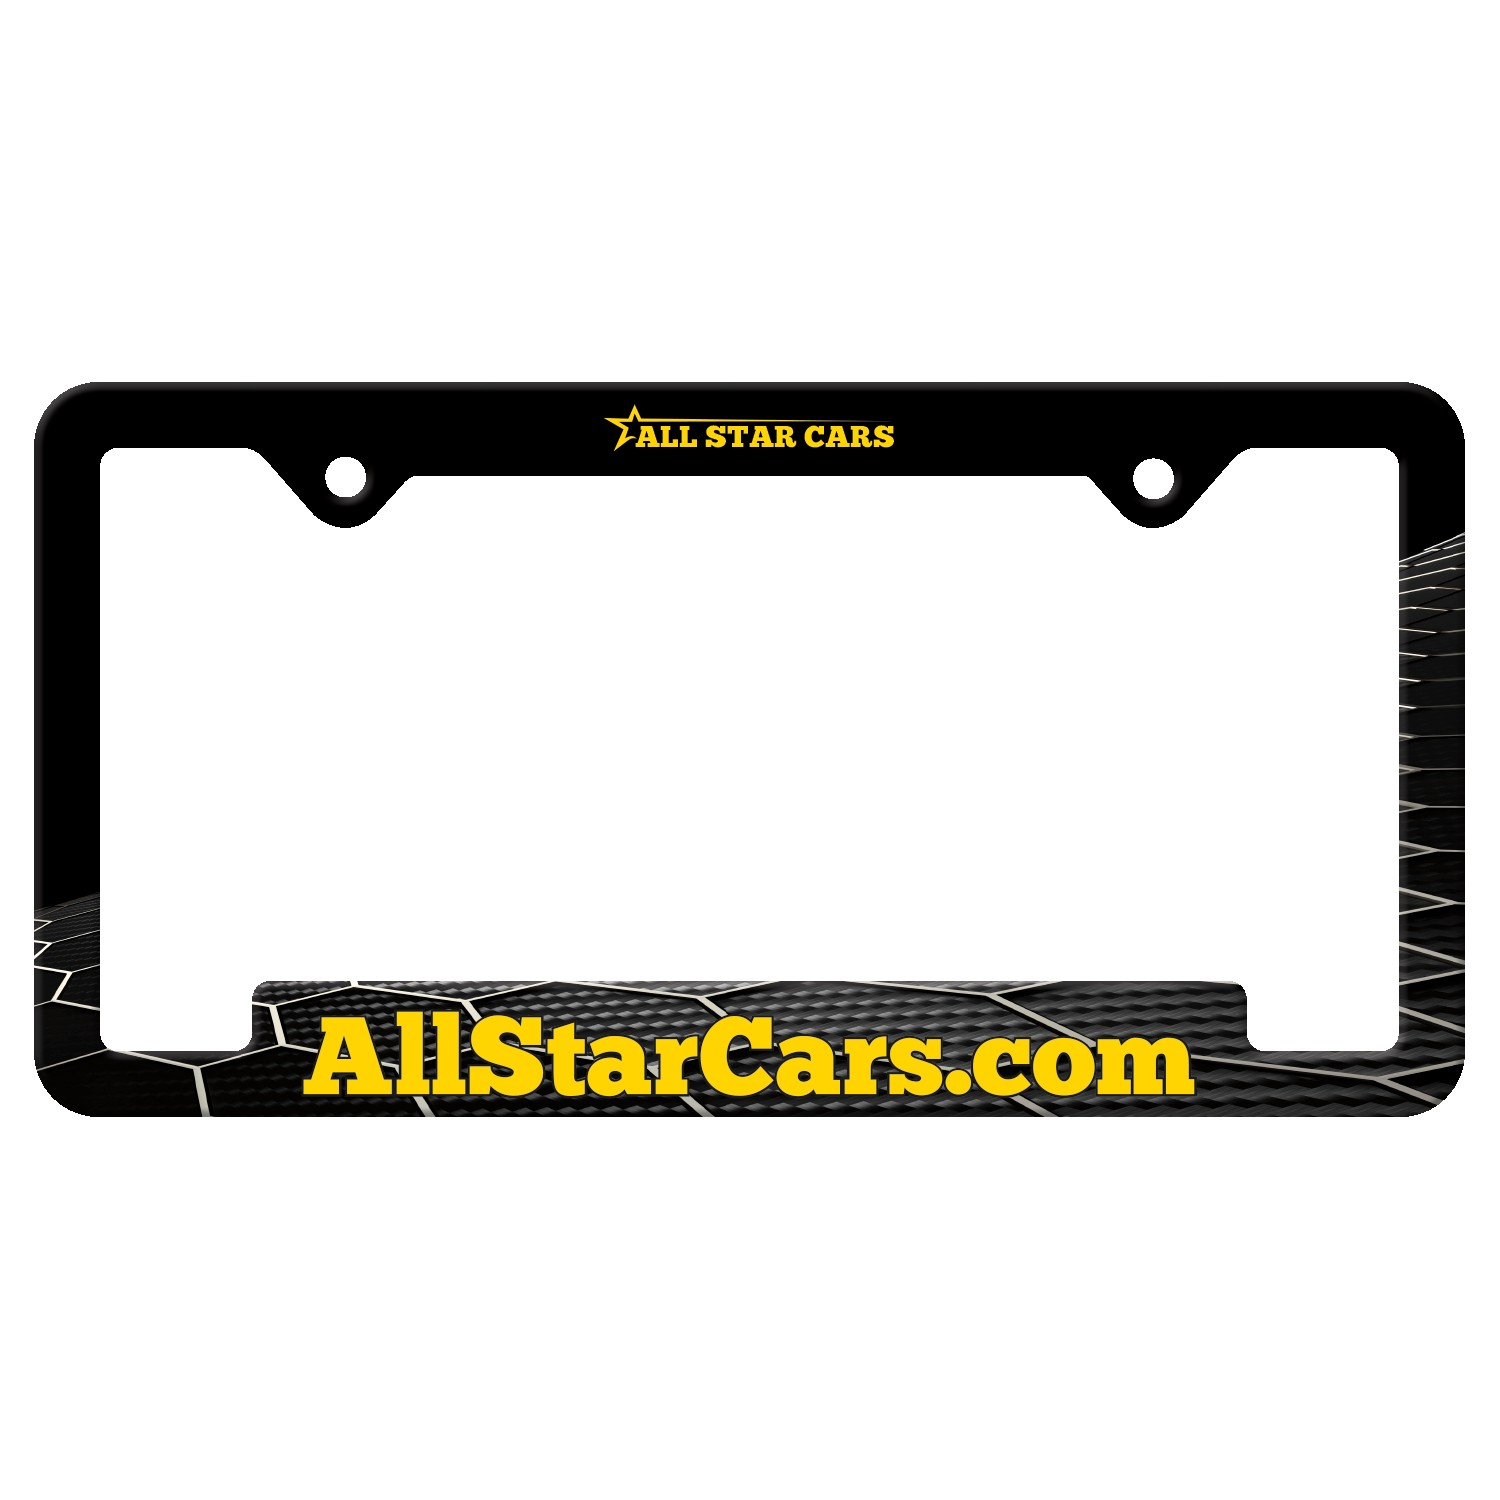 565529300-183 - Auto License Frame Full Color w/ 2 Holes & Large Bottom Jutted Panel - thumbnail